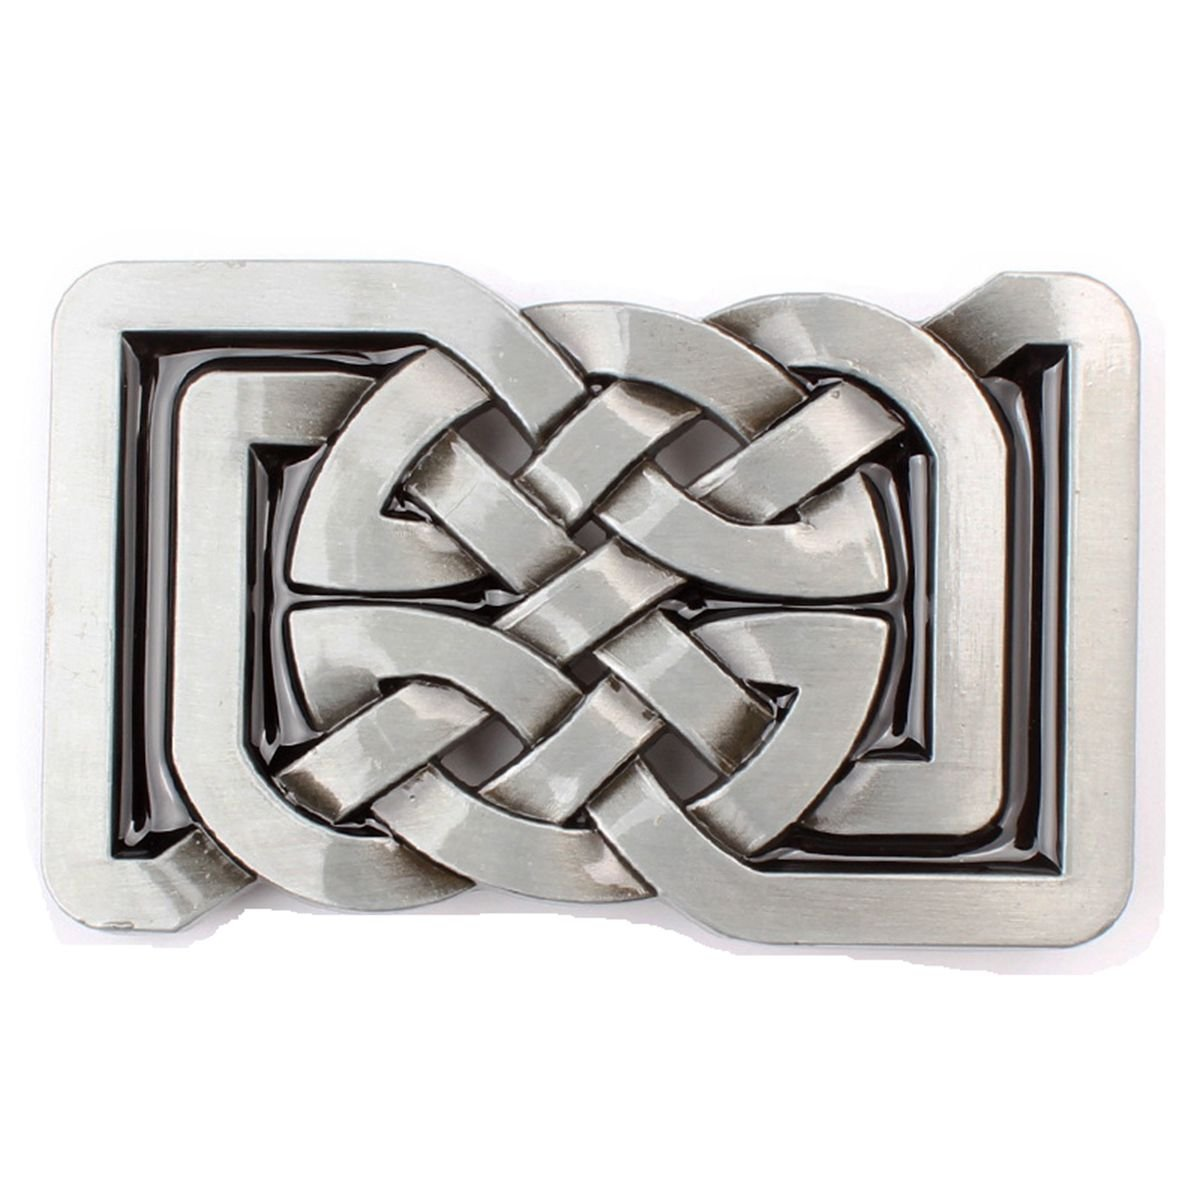 Vintage Celtic Knot Belt Buckle Cowboy Native American Motorcyclist (CLT-01) SK-08